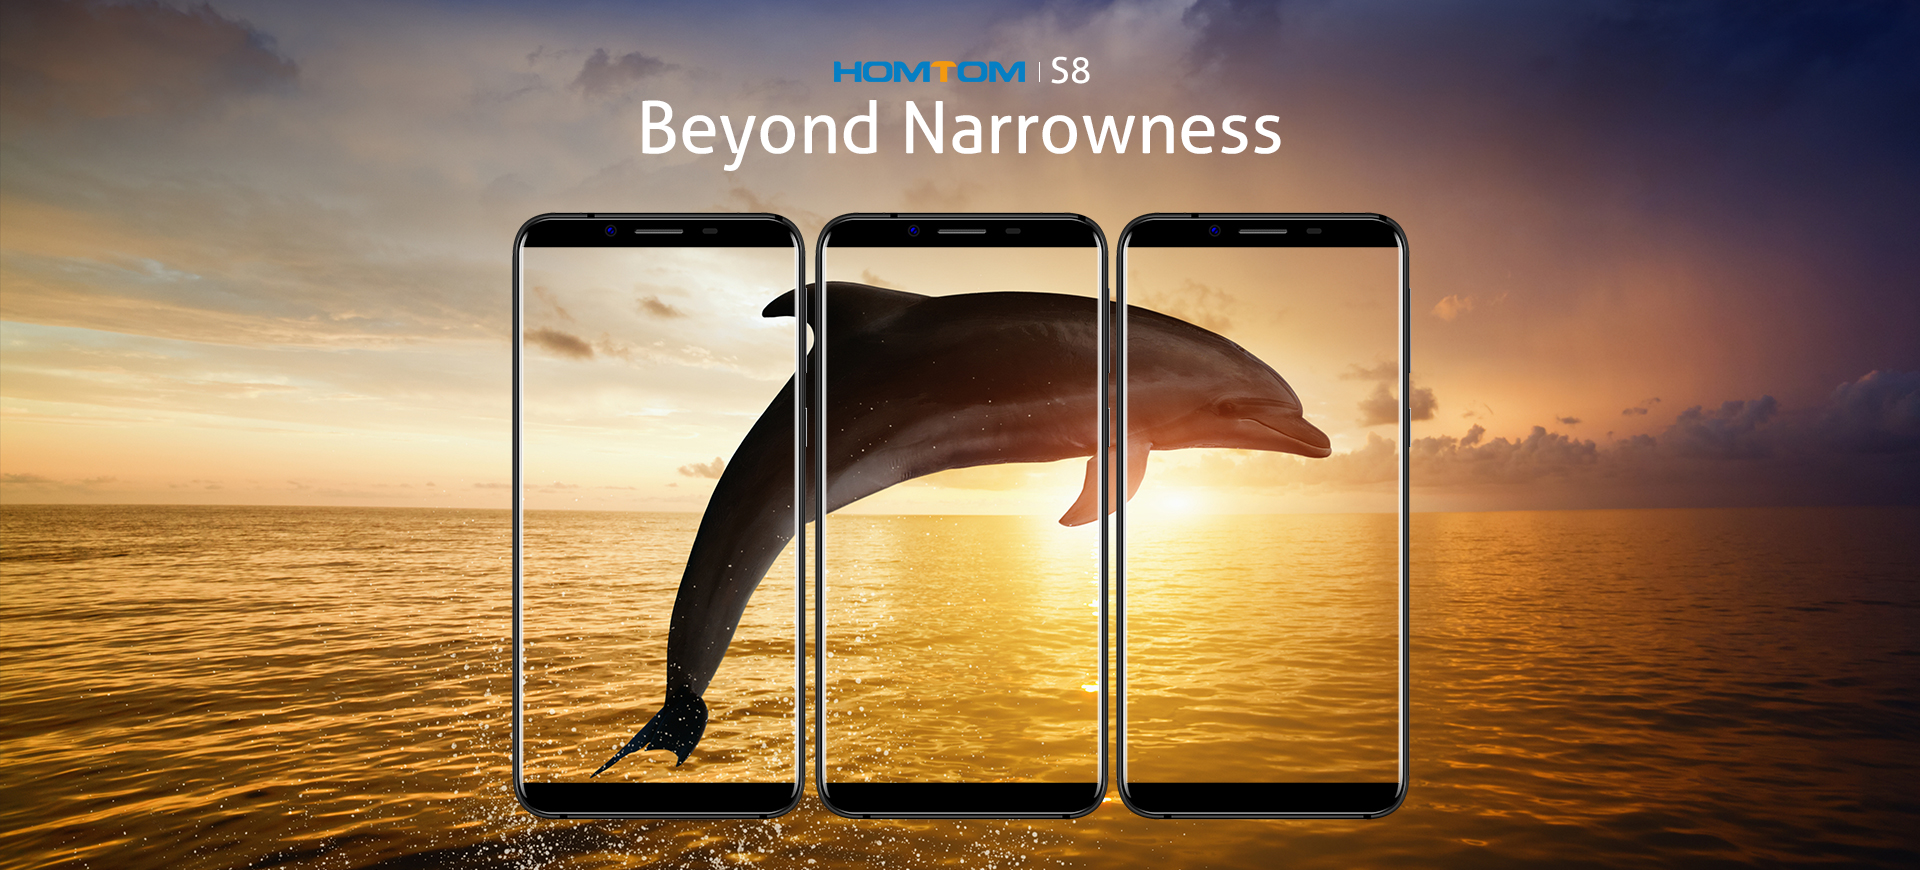 HOMTOM S8 — a new potential leader in the smartphone market